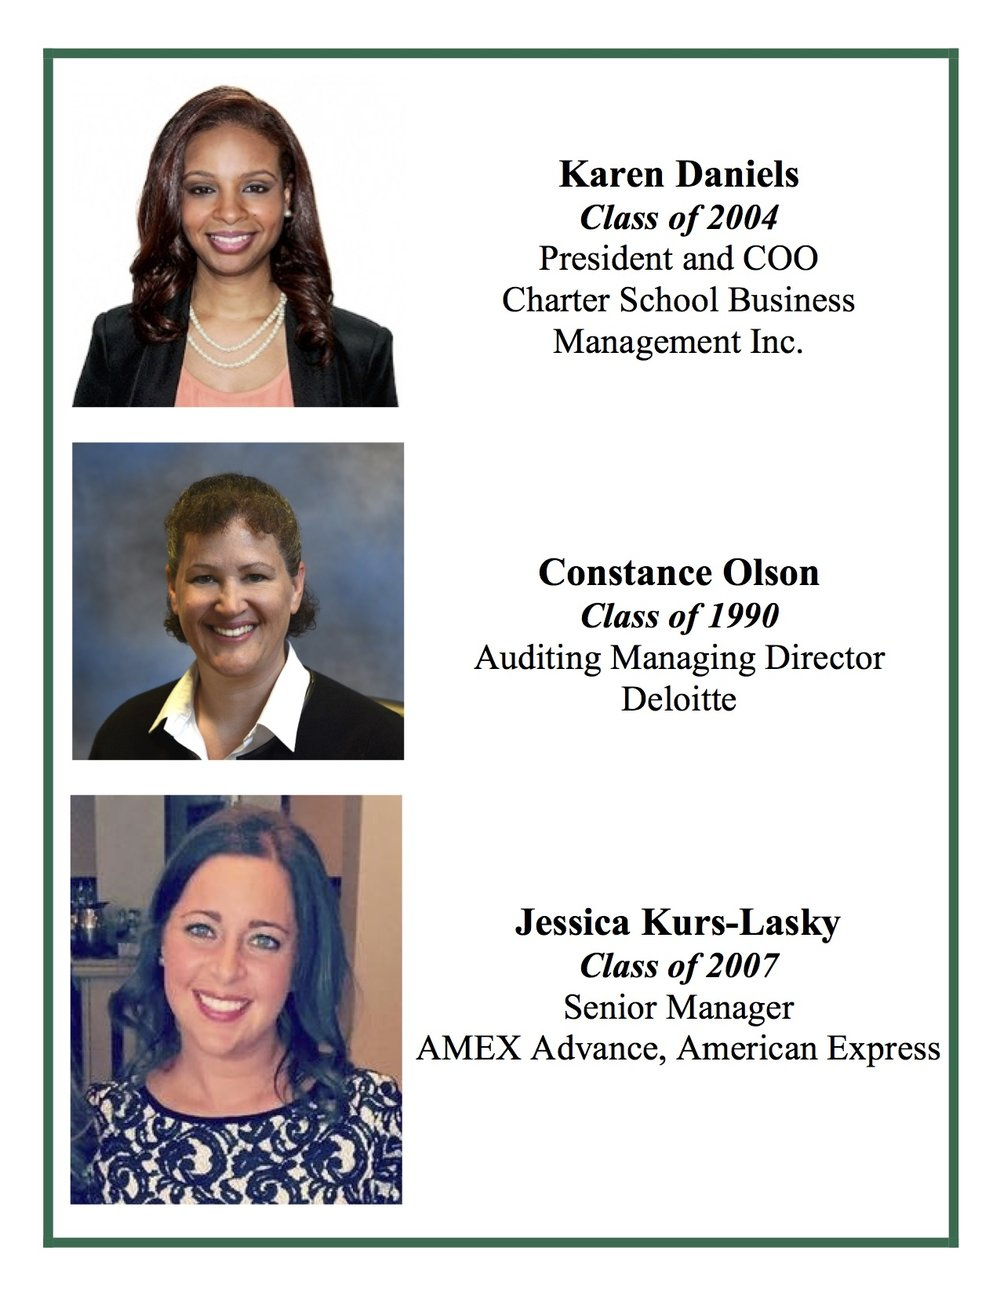 Binghamton_University_s_Women_in_Business_Winter_Women_s_Panelists1.jpg